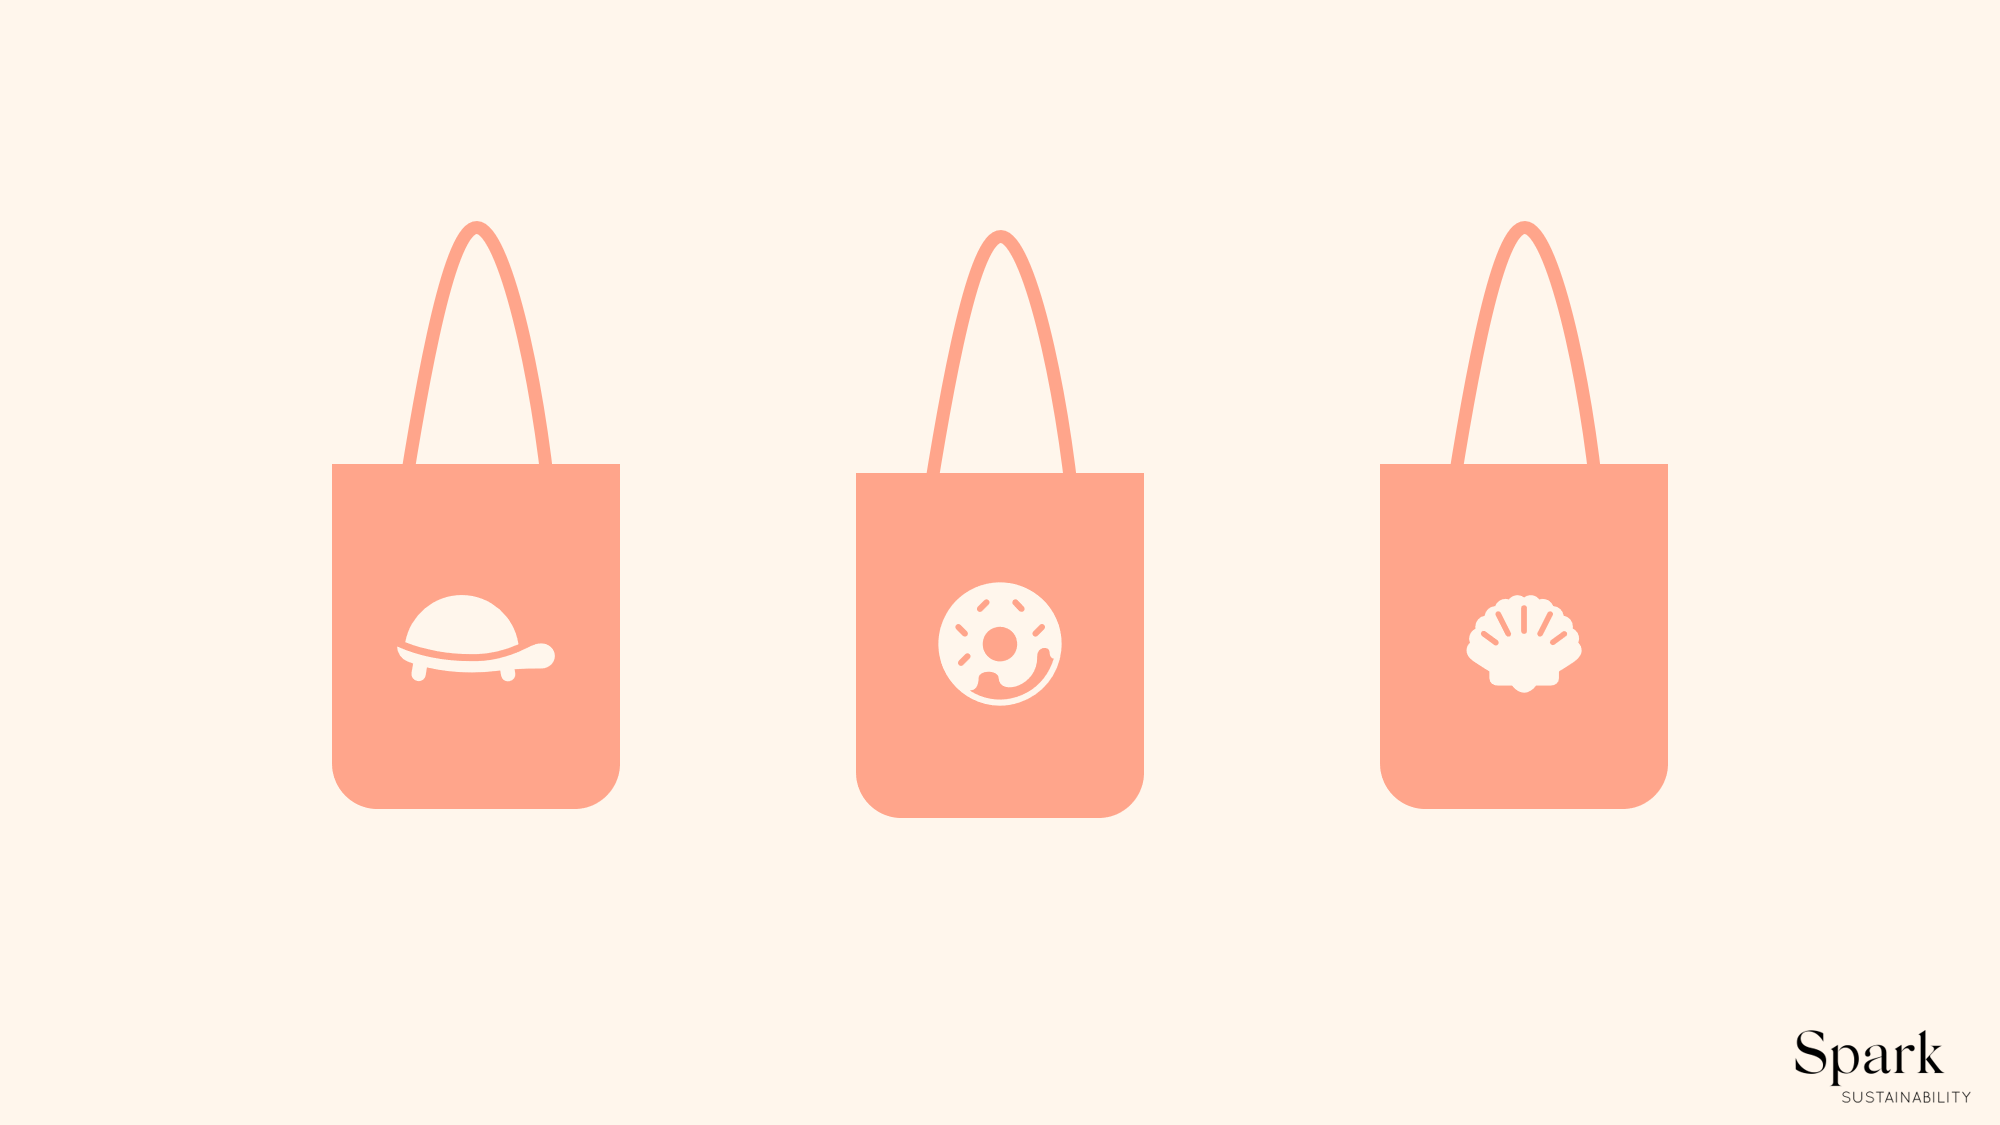 Graphic design of three tote bags. Sustainable tip: hoarding tote bags is not better than using plastic bags.